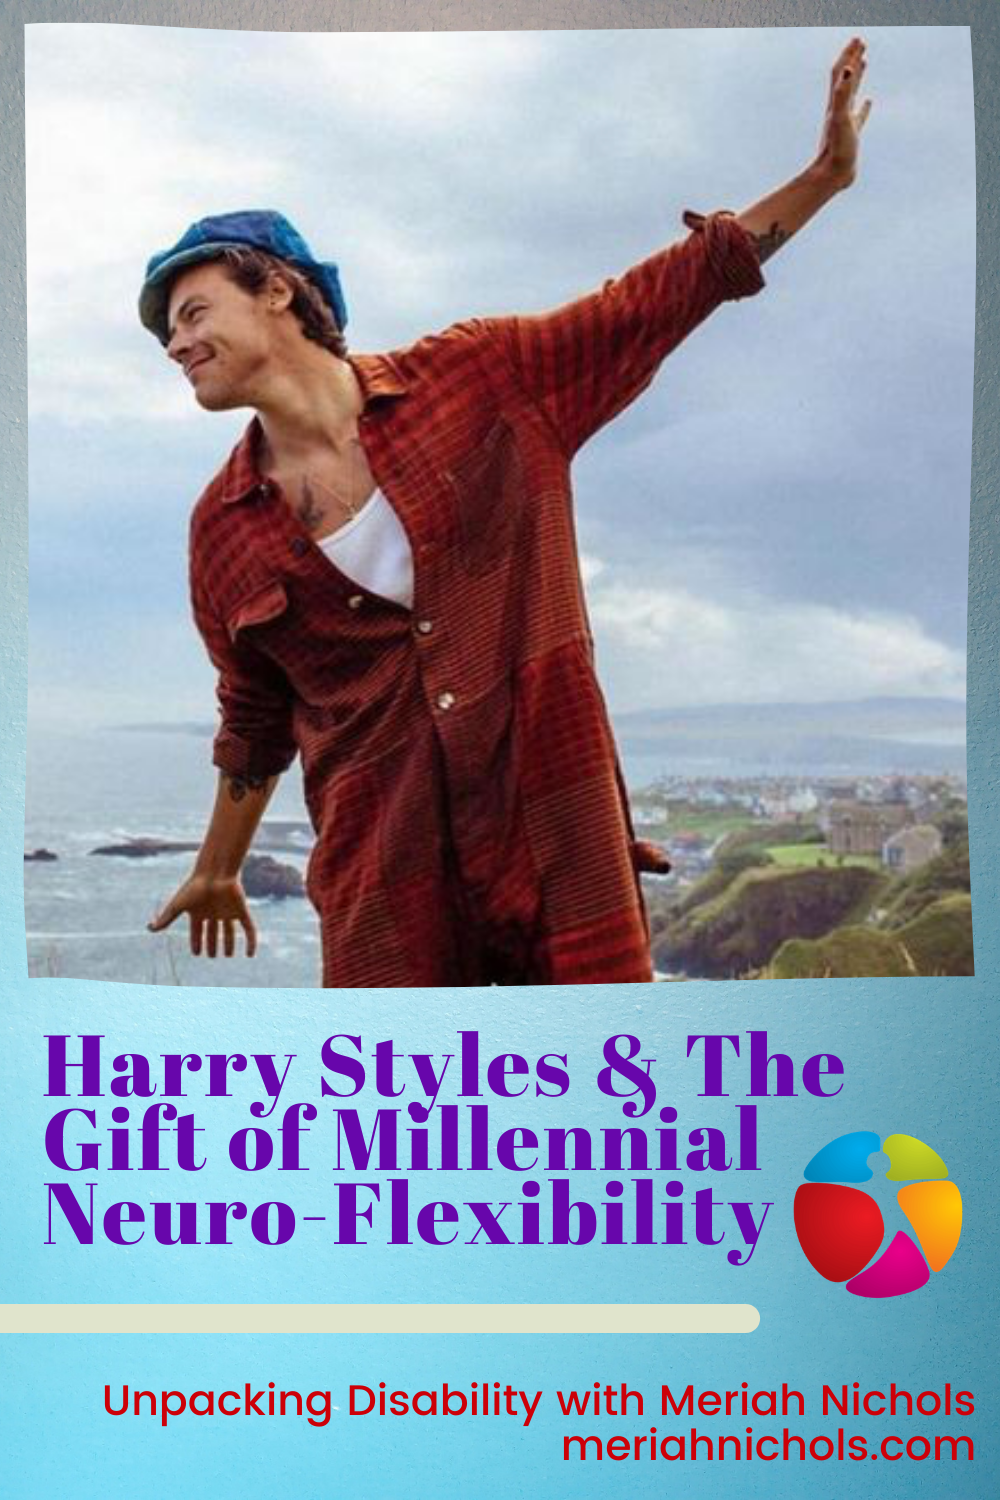 Harry Styles as a representative of his generation, and millennial neuro-flexibility - their fresh approach to life and new ways of approaching everything (ID: image of a man with red shirt, white undershirt and green beret with his arms outstretched, smiling. He is on a cliff, with his back to the ocean)